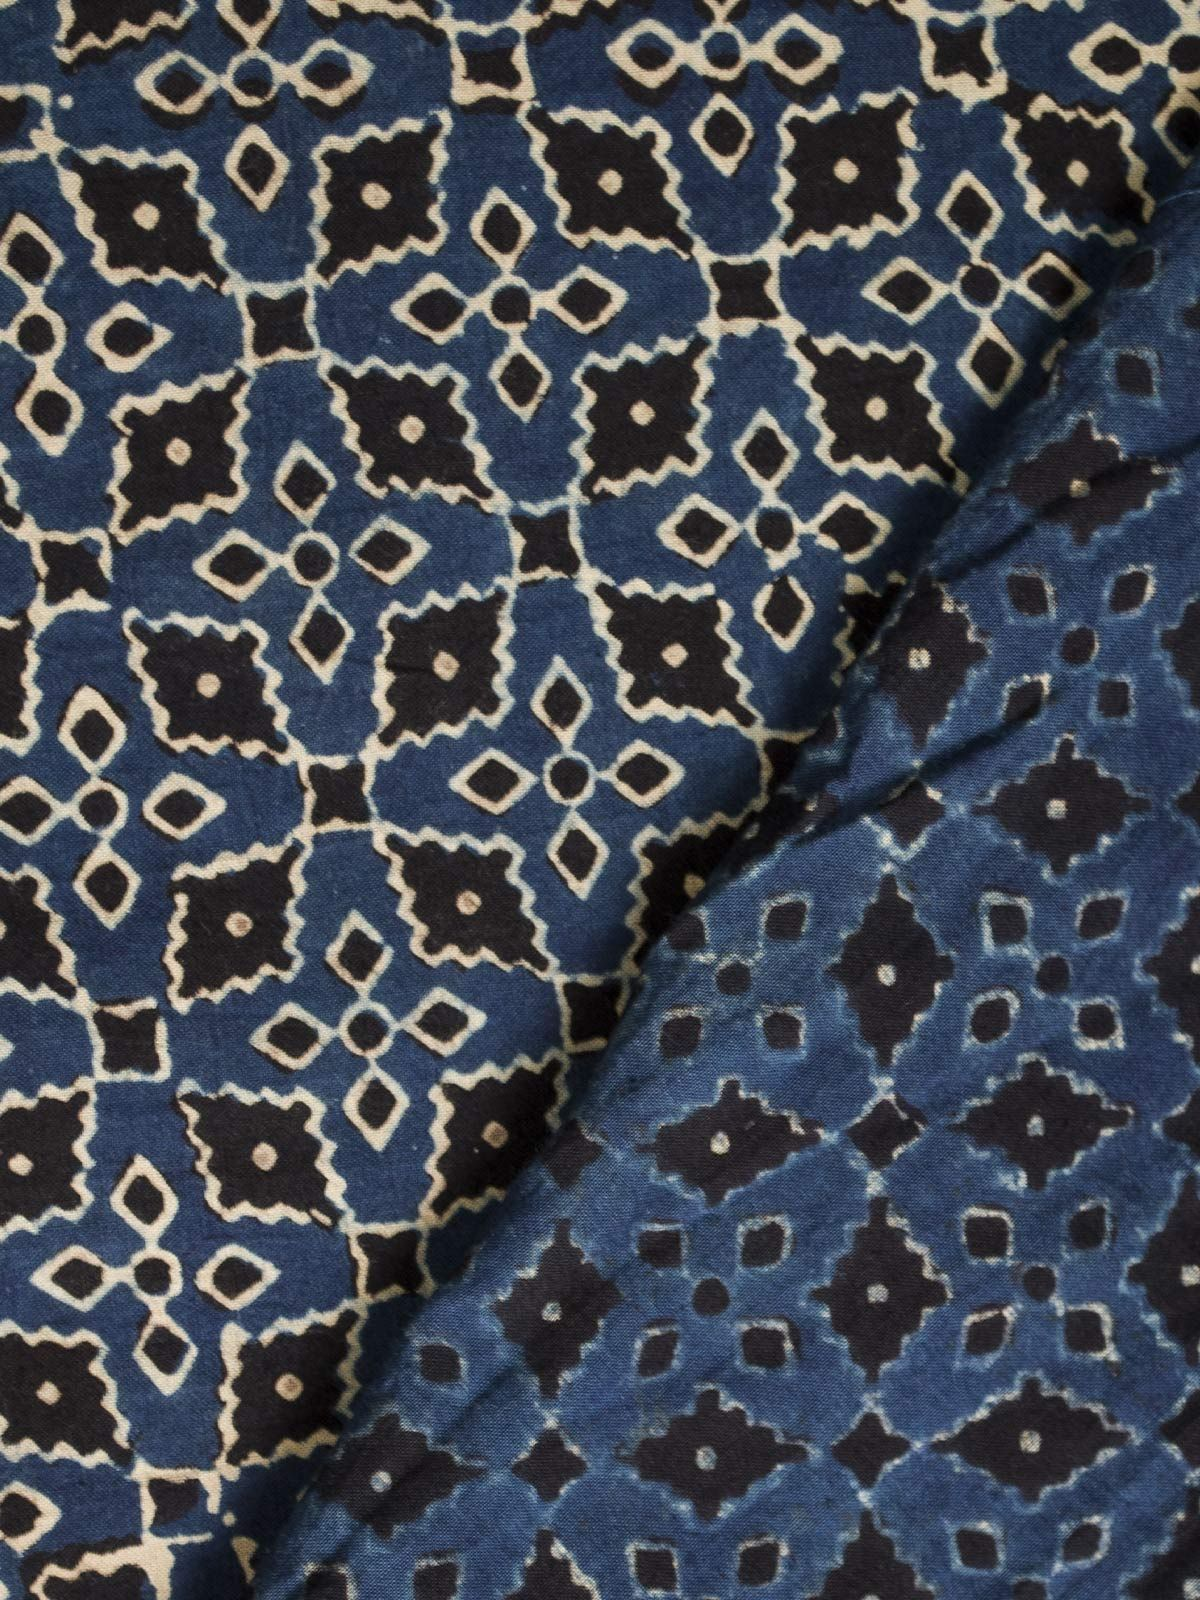 Blue and Black Ajrak Block Print Cotton Fabric